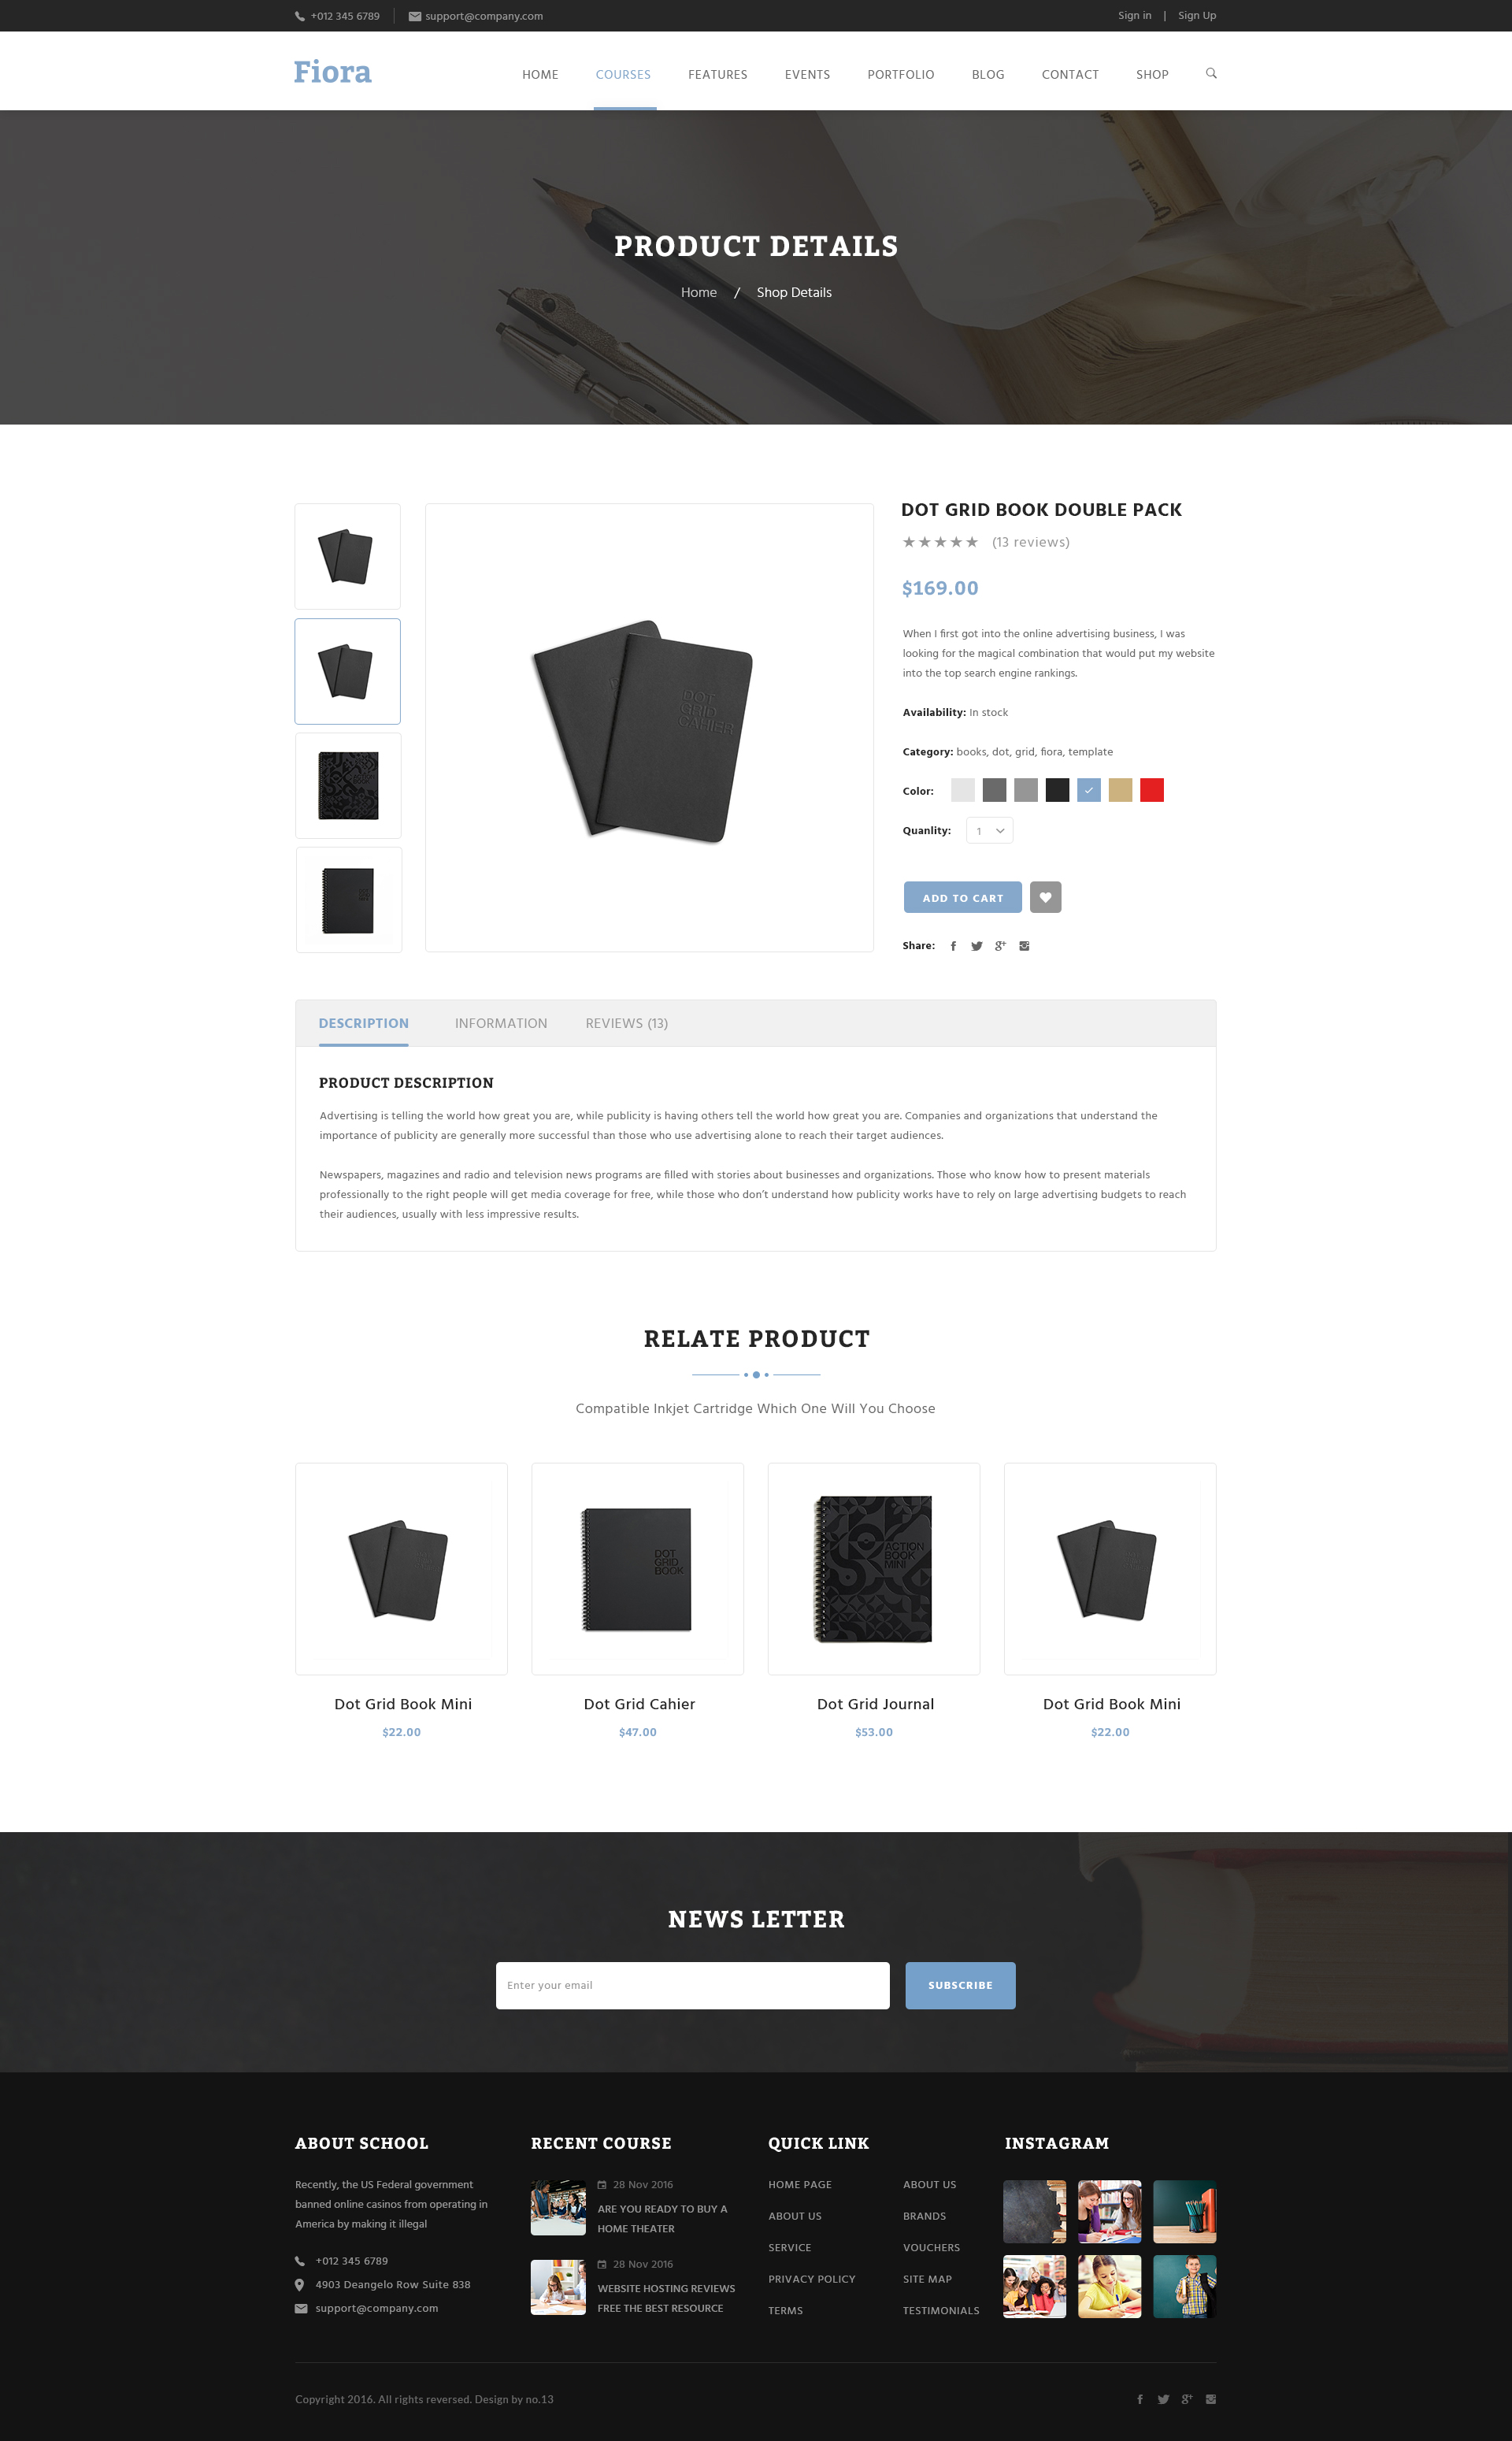 Copyright 169 2017 the design co all rights reserved - Fiora Education Psd Template